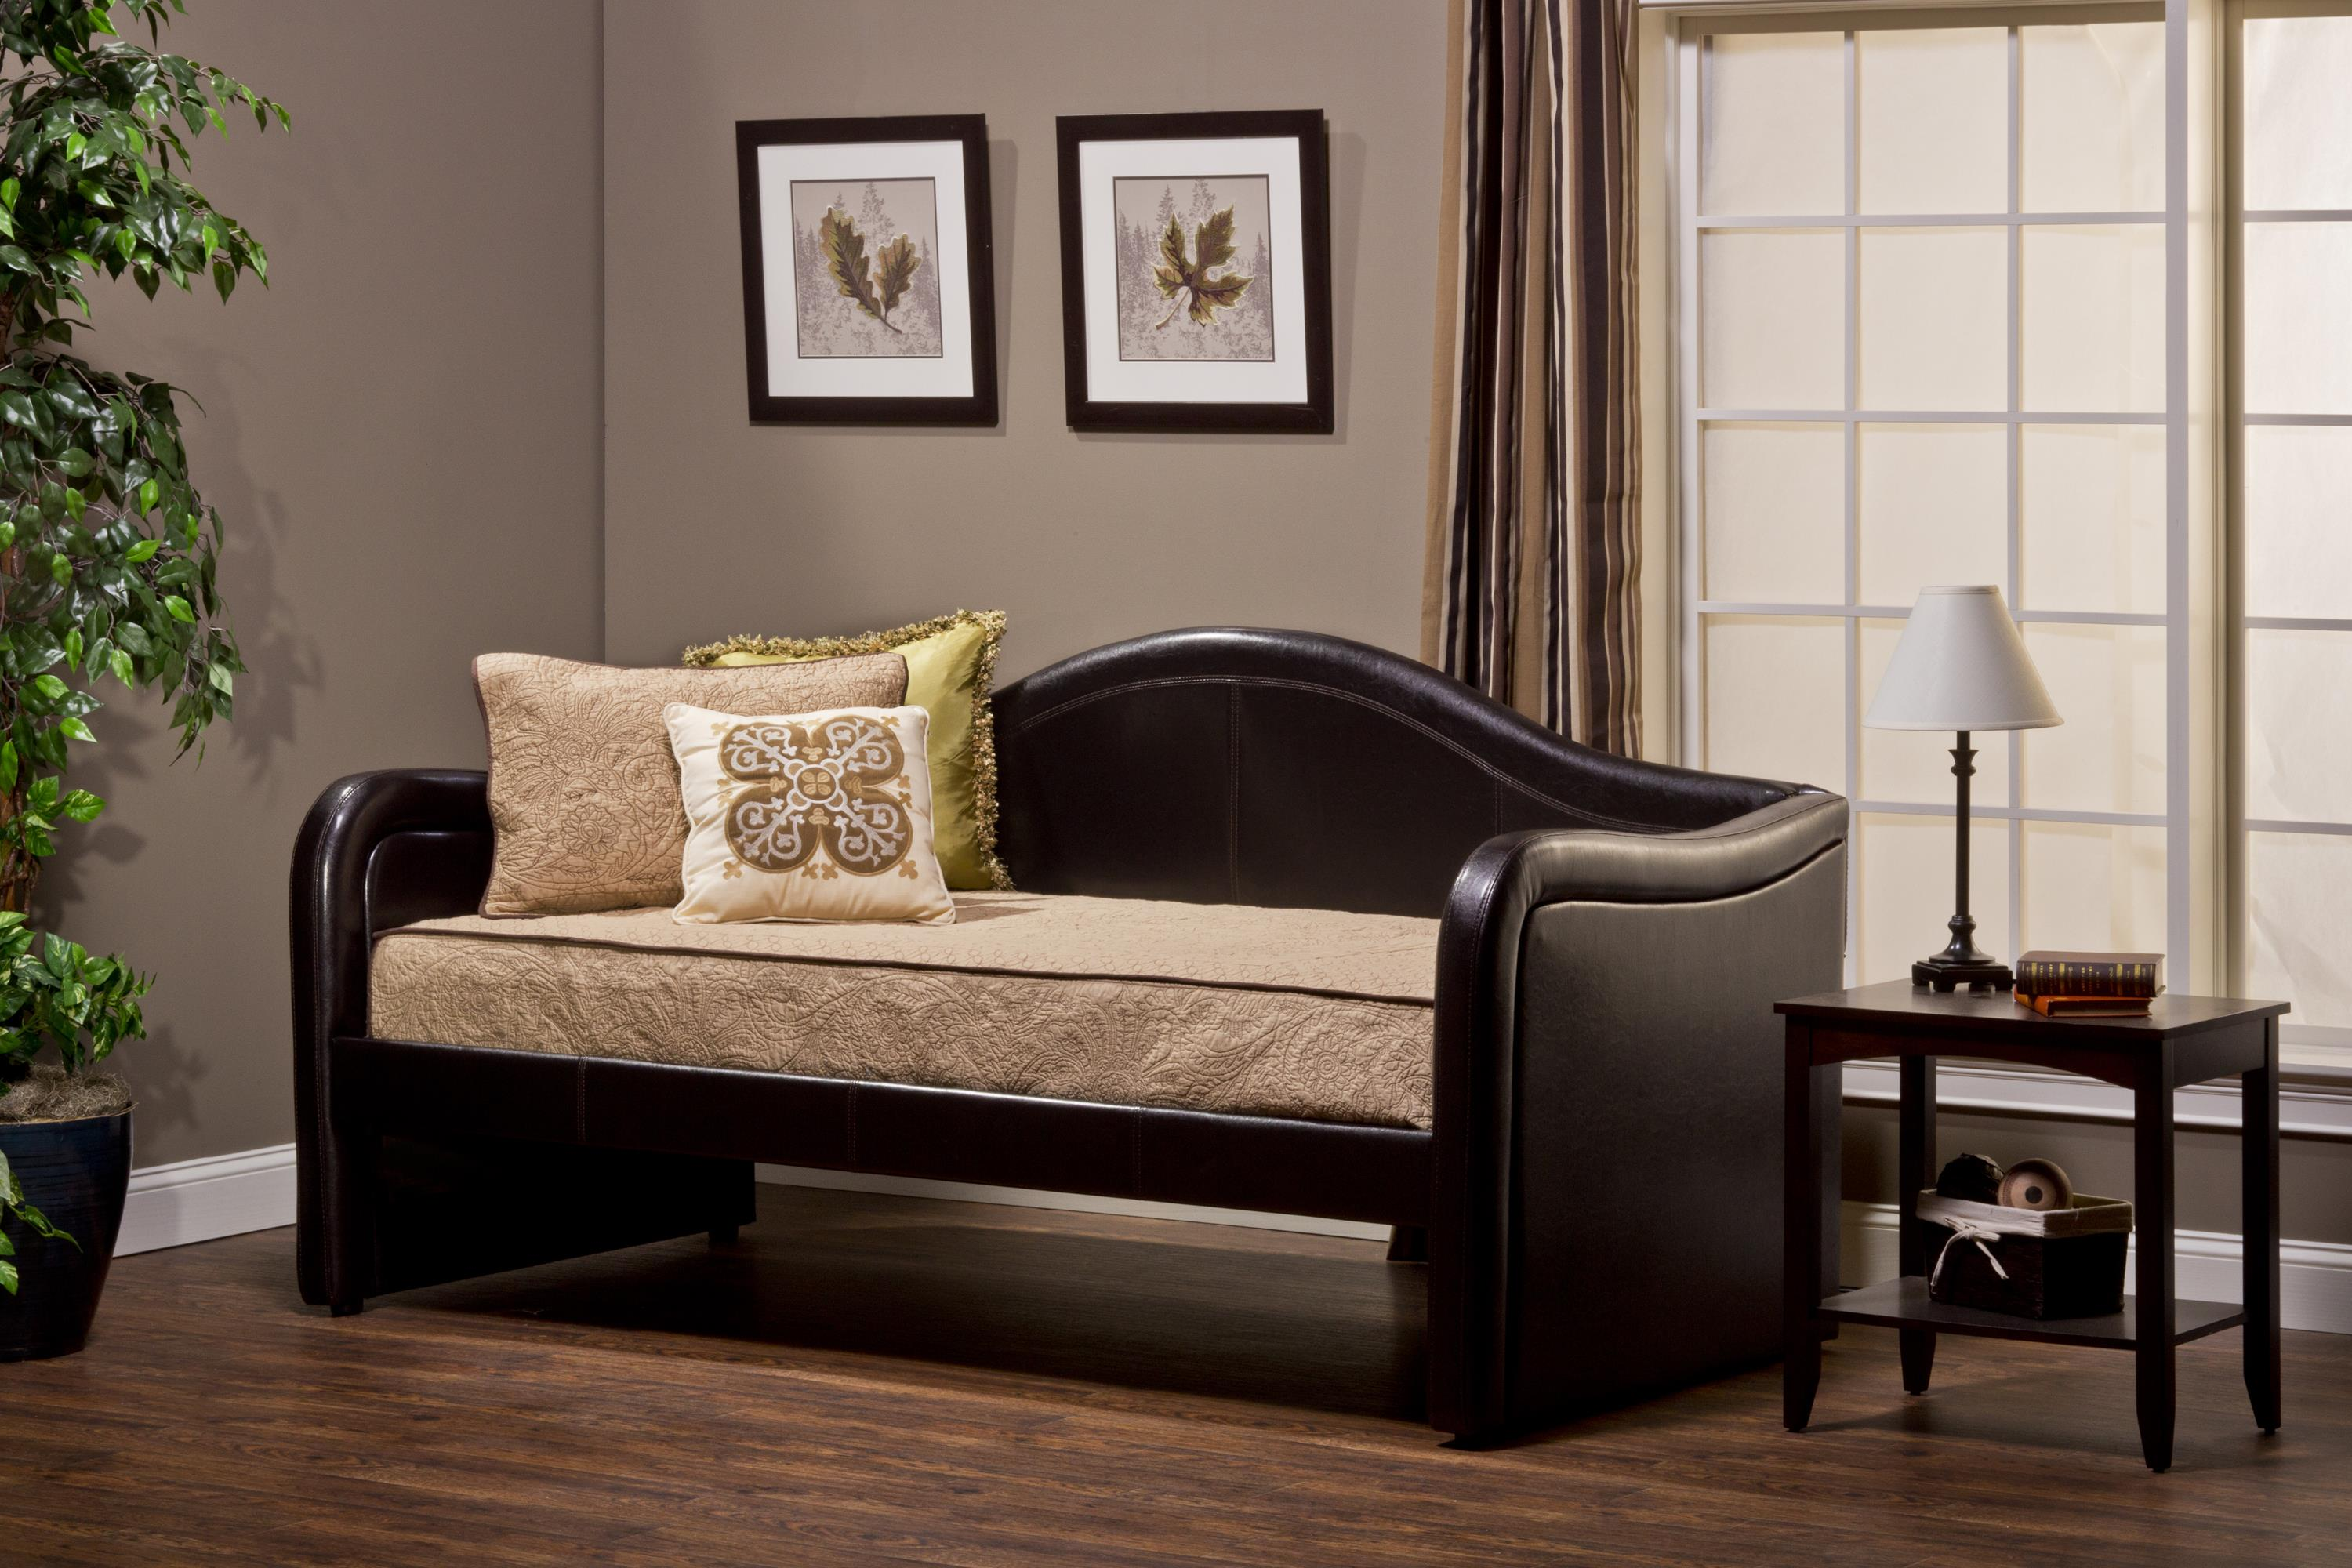 Hillsdale Daybeds Brenton Daybed with Optional Trundle Bed - Item Number: 1719DB